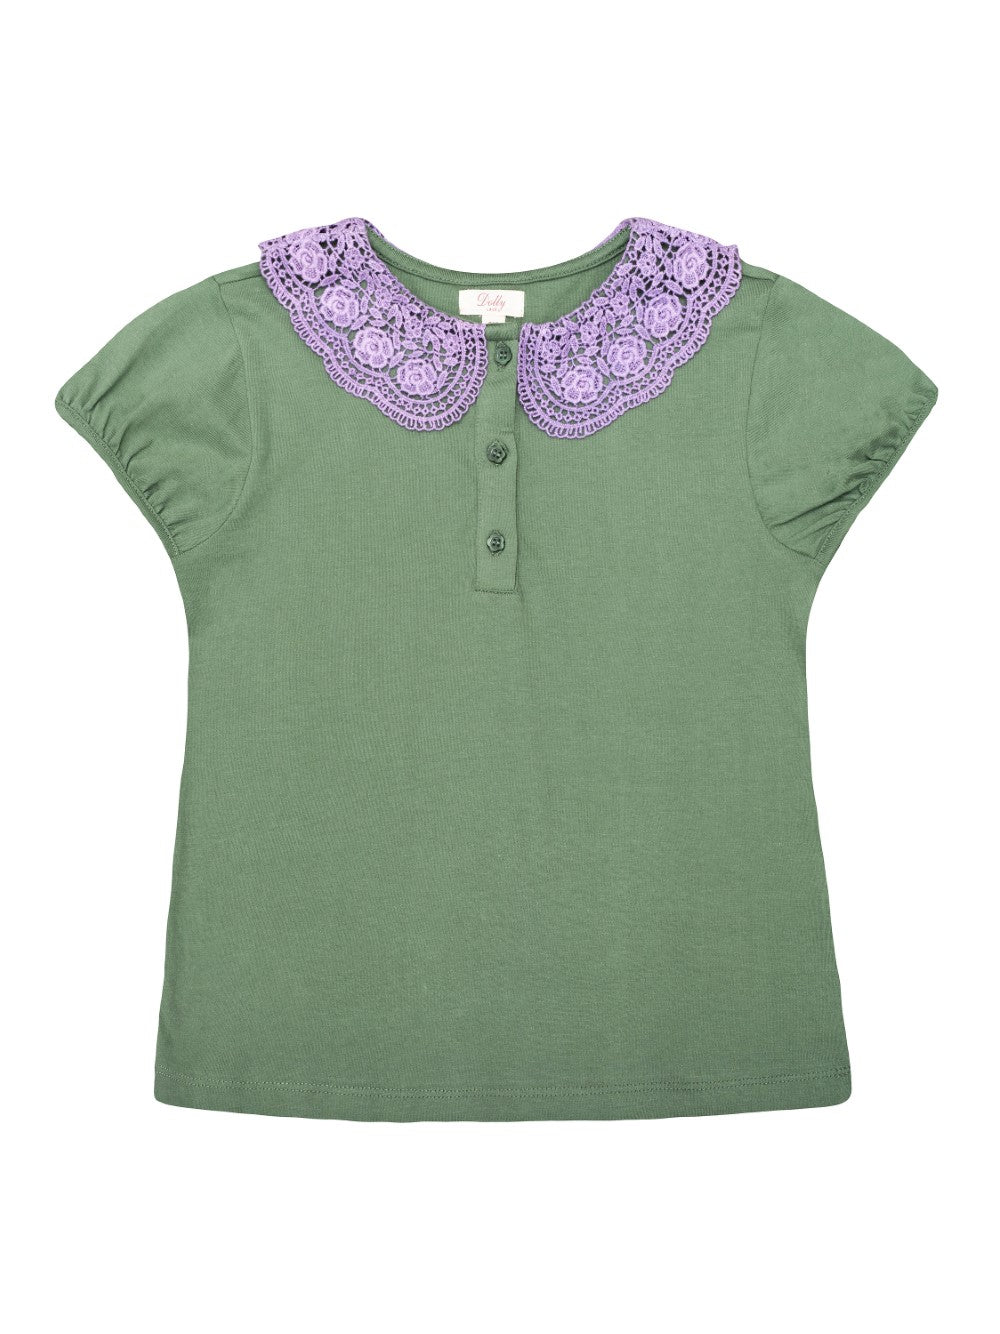 Green Lace Collar Tee